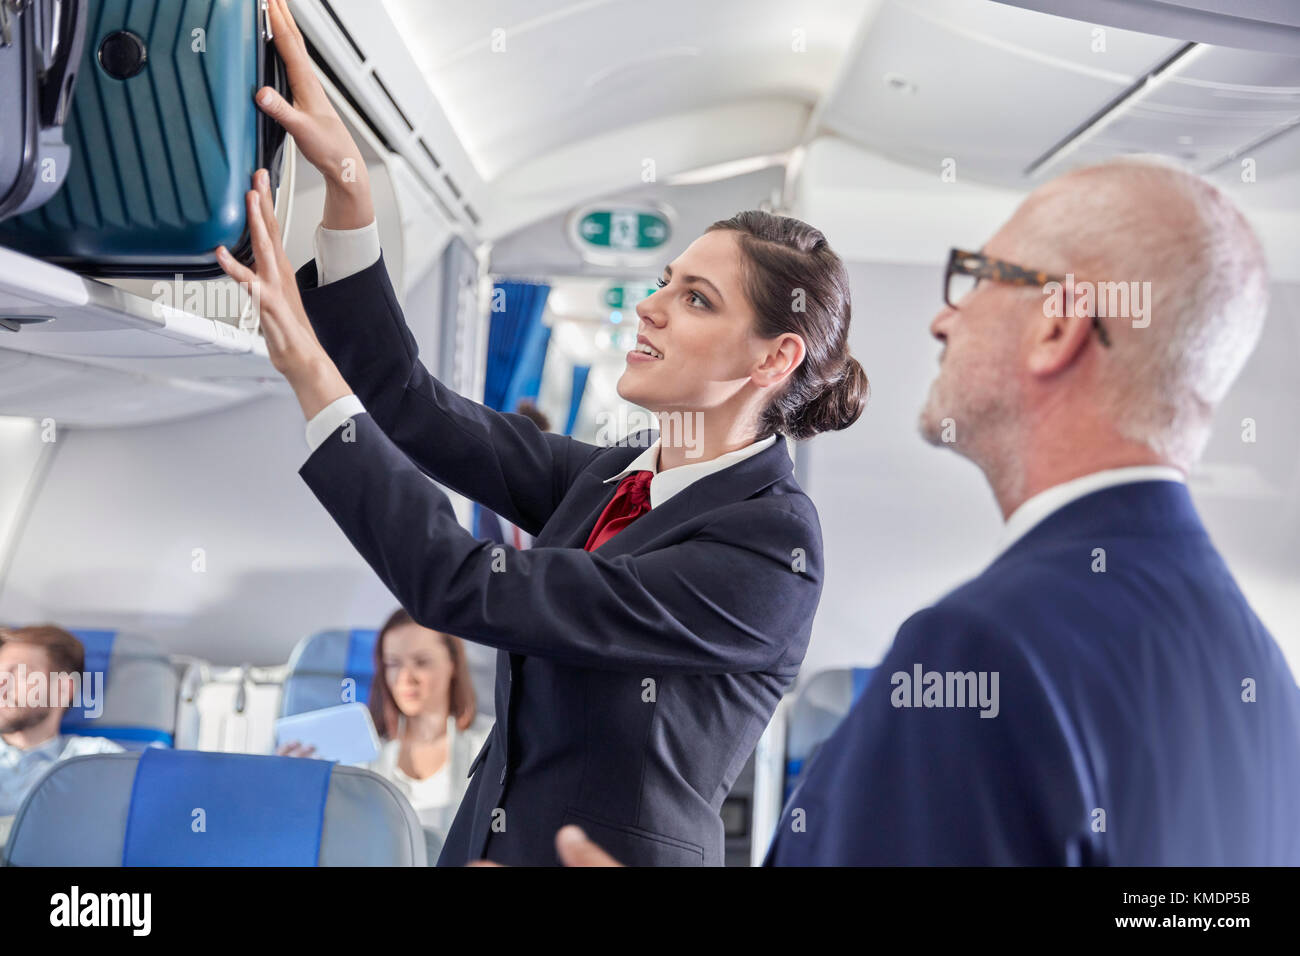 Flight attendant helping businessman place luggage in overhead compartment on airplane - Stock Image